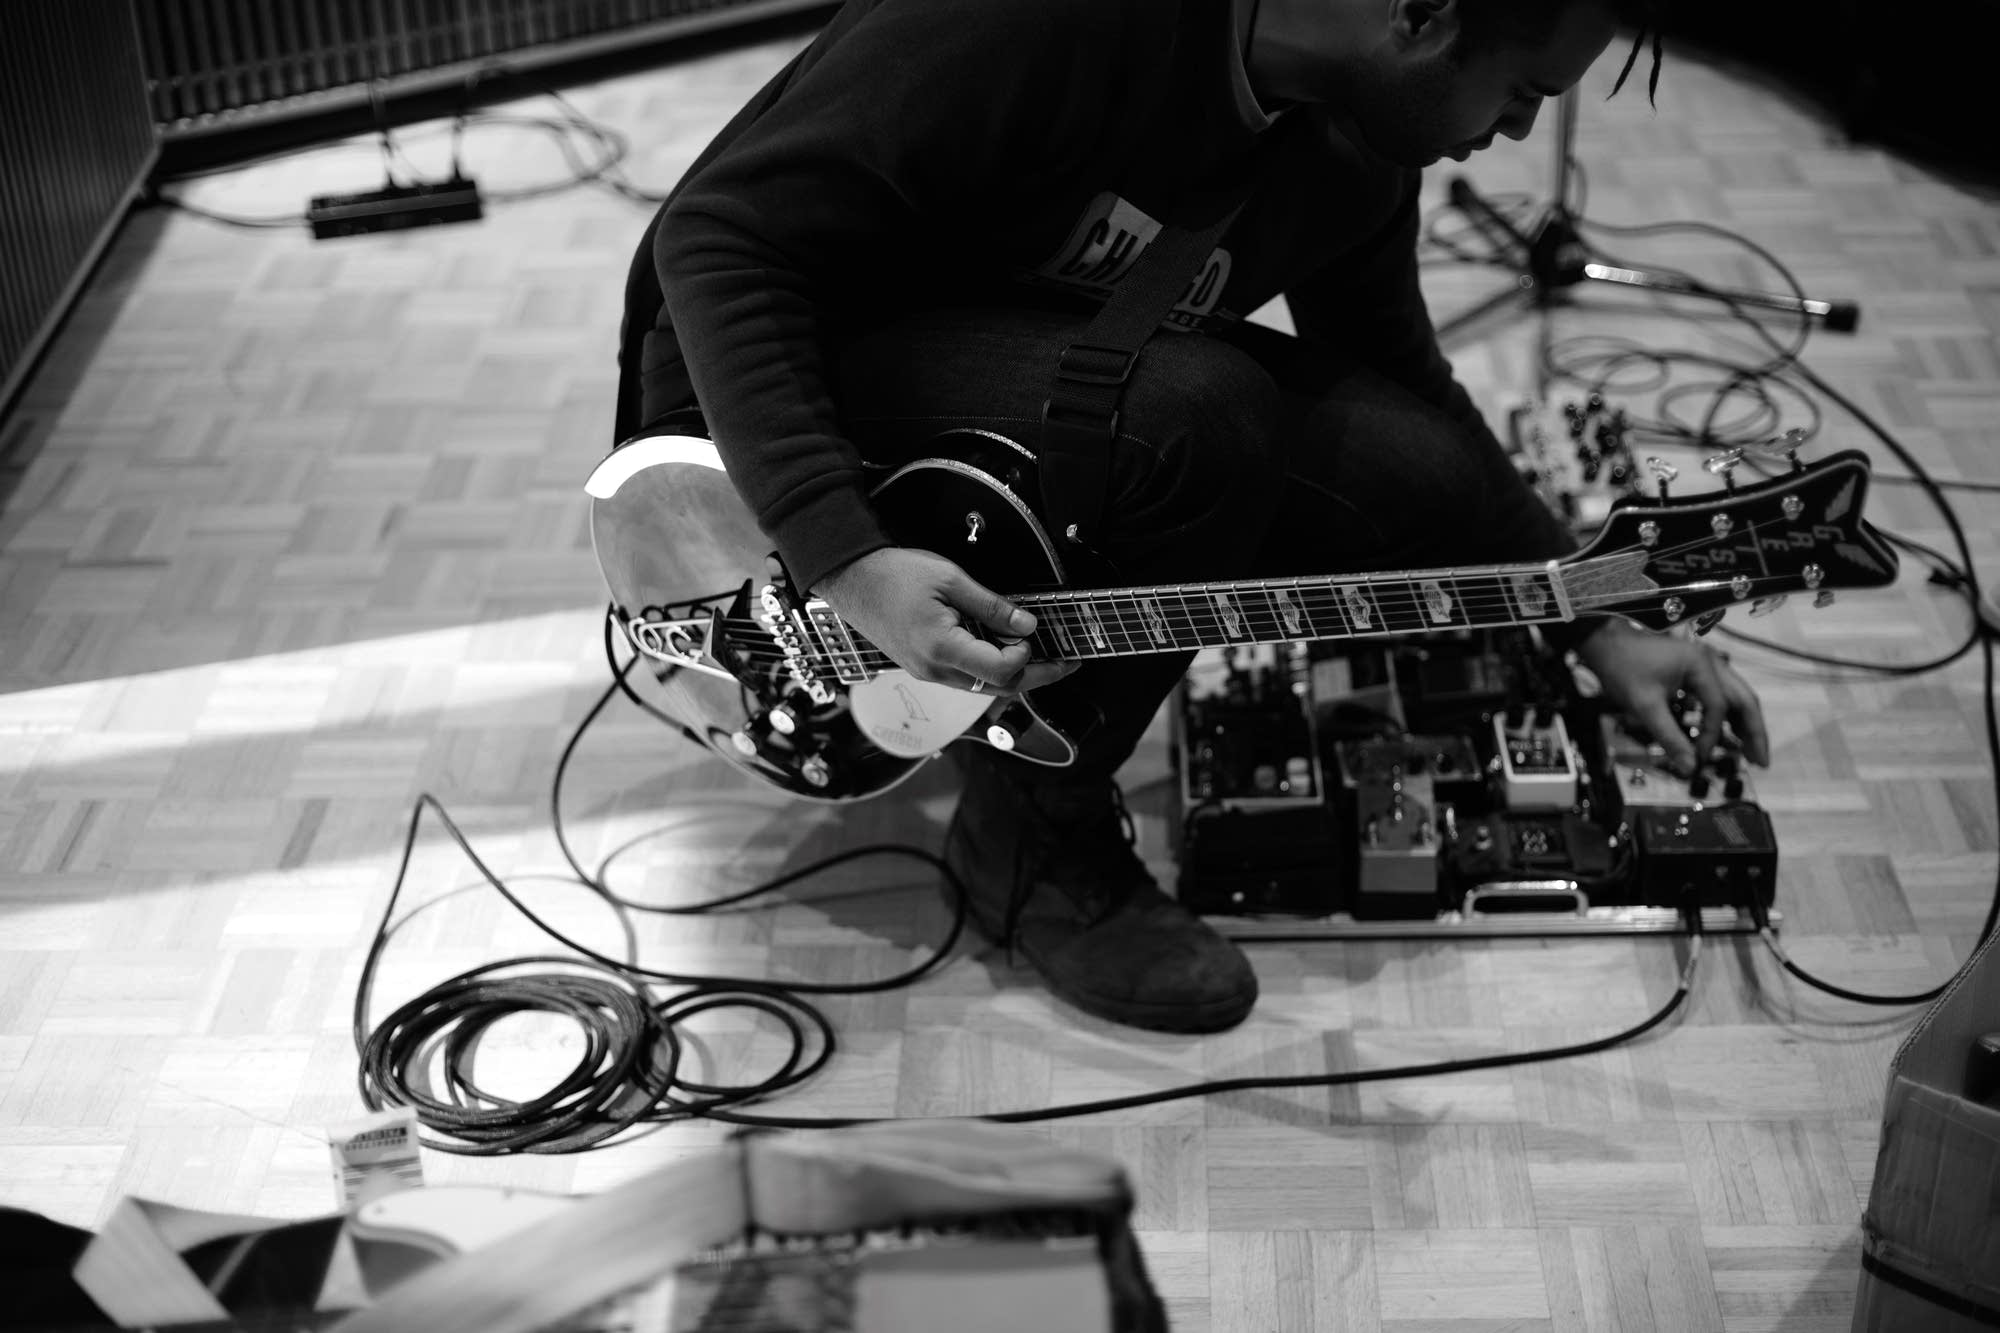 Gang of Youths perform in The Current studio